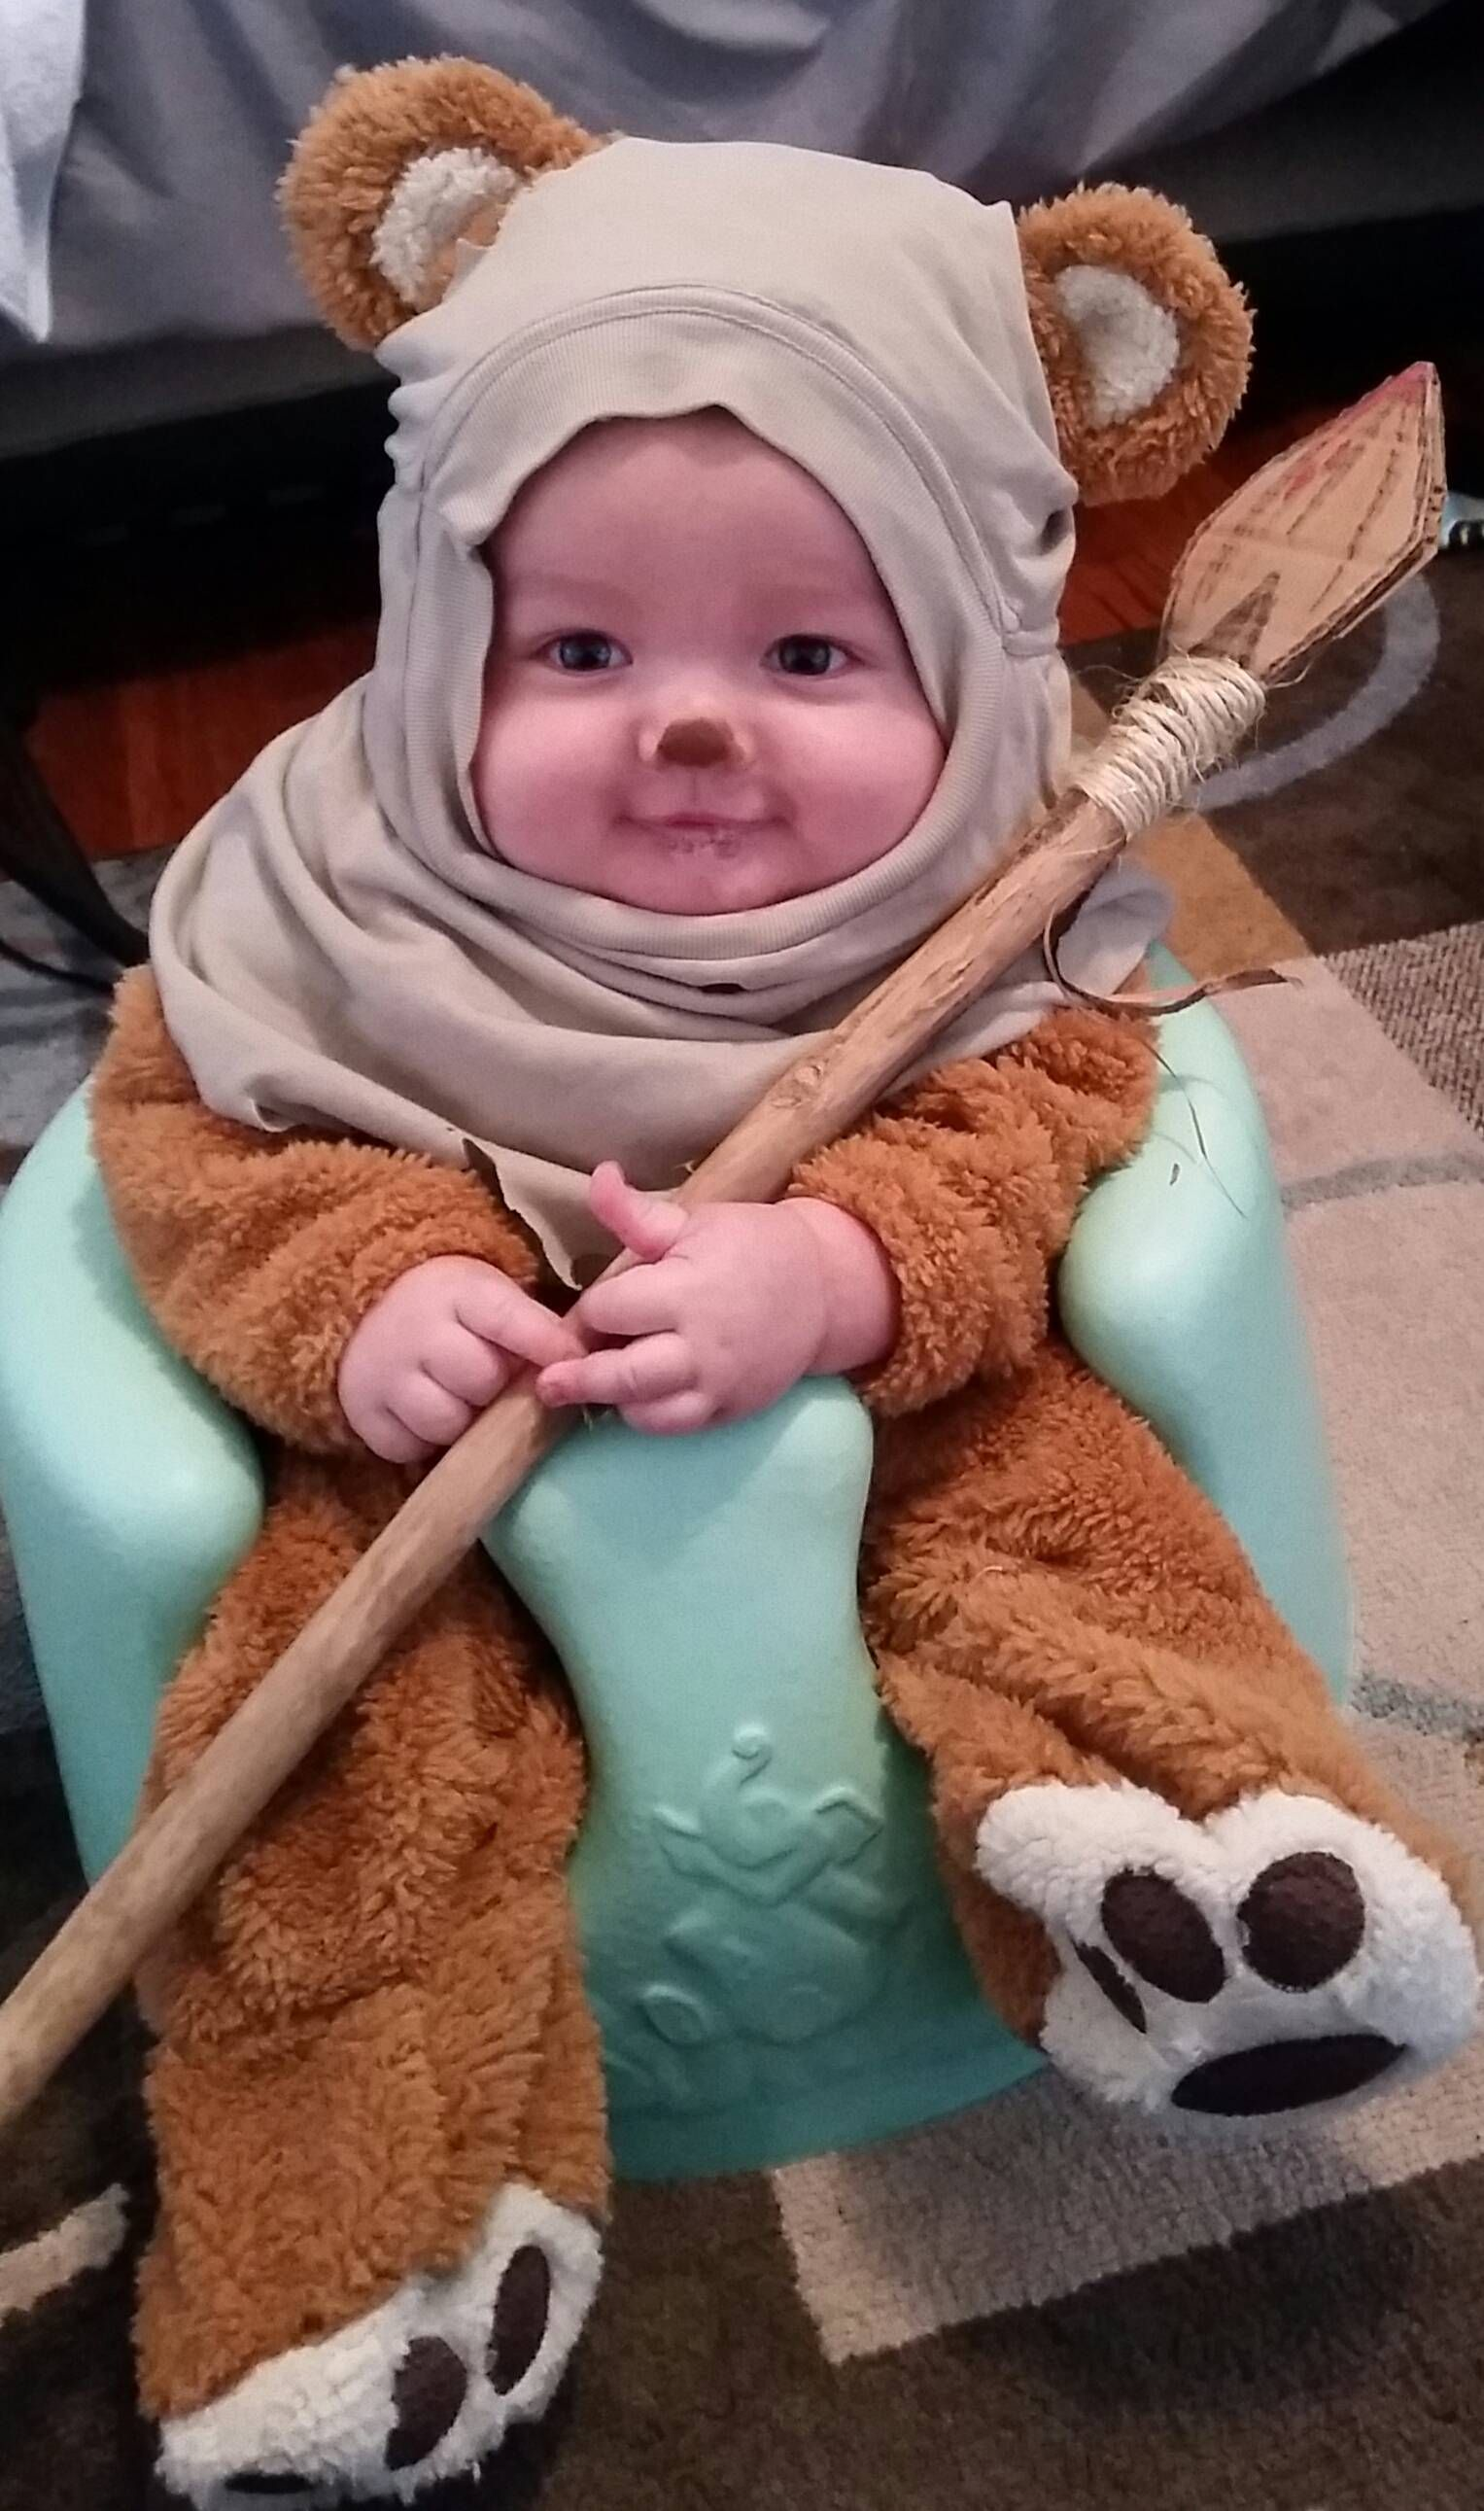 ewok costume - Google Search  sc 1 st  Pinterest & ewok costume - Google Search | Holiday | Pinterest | Ewok costume